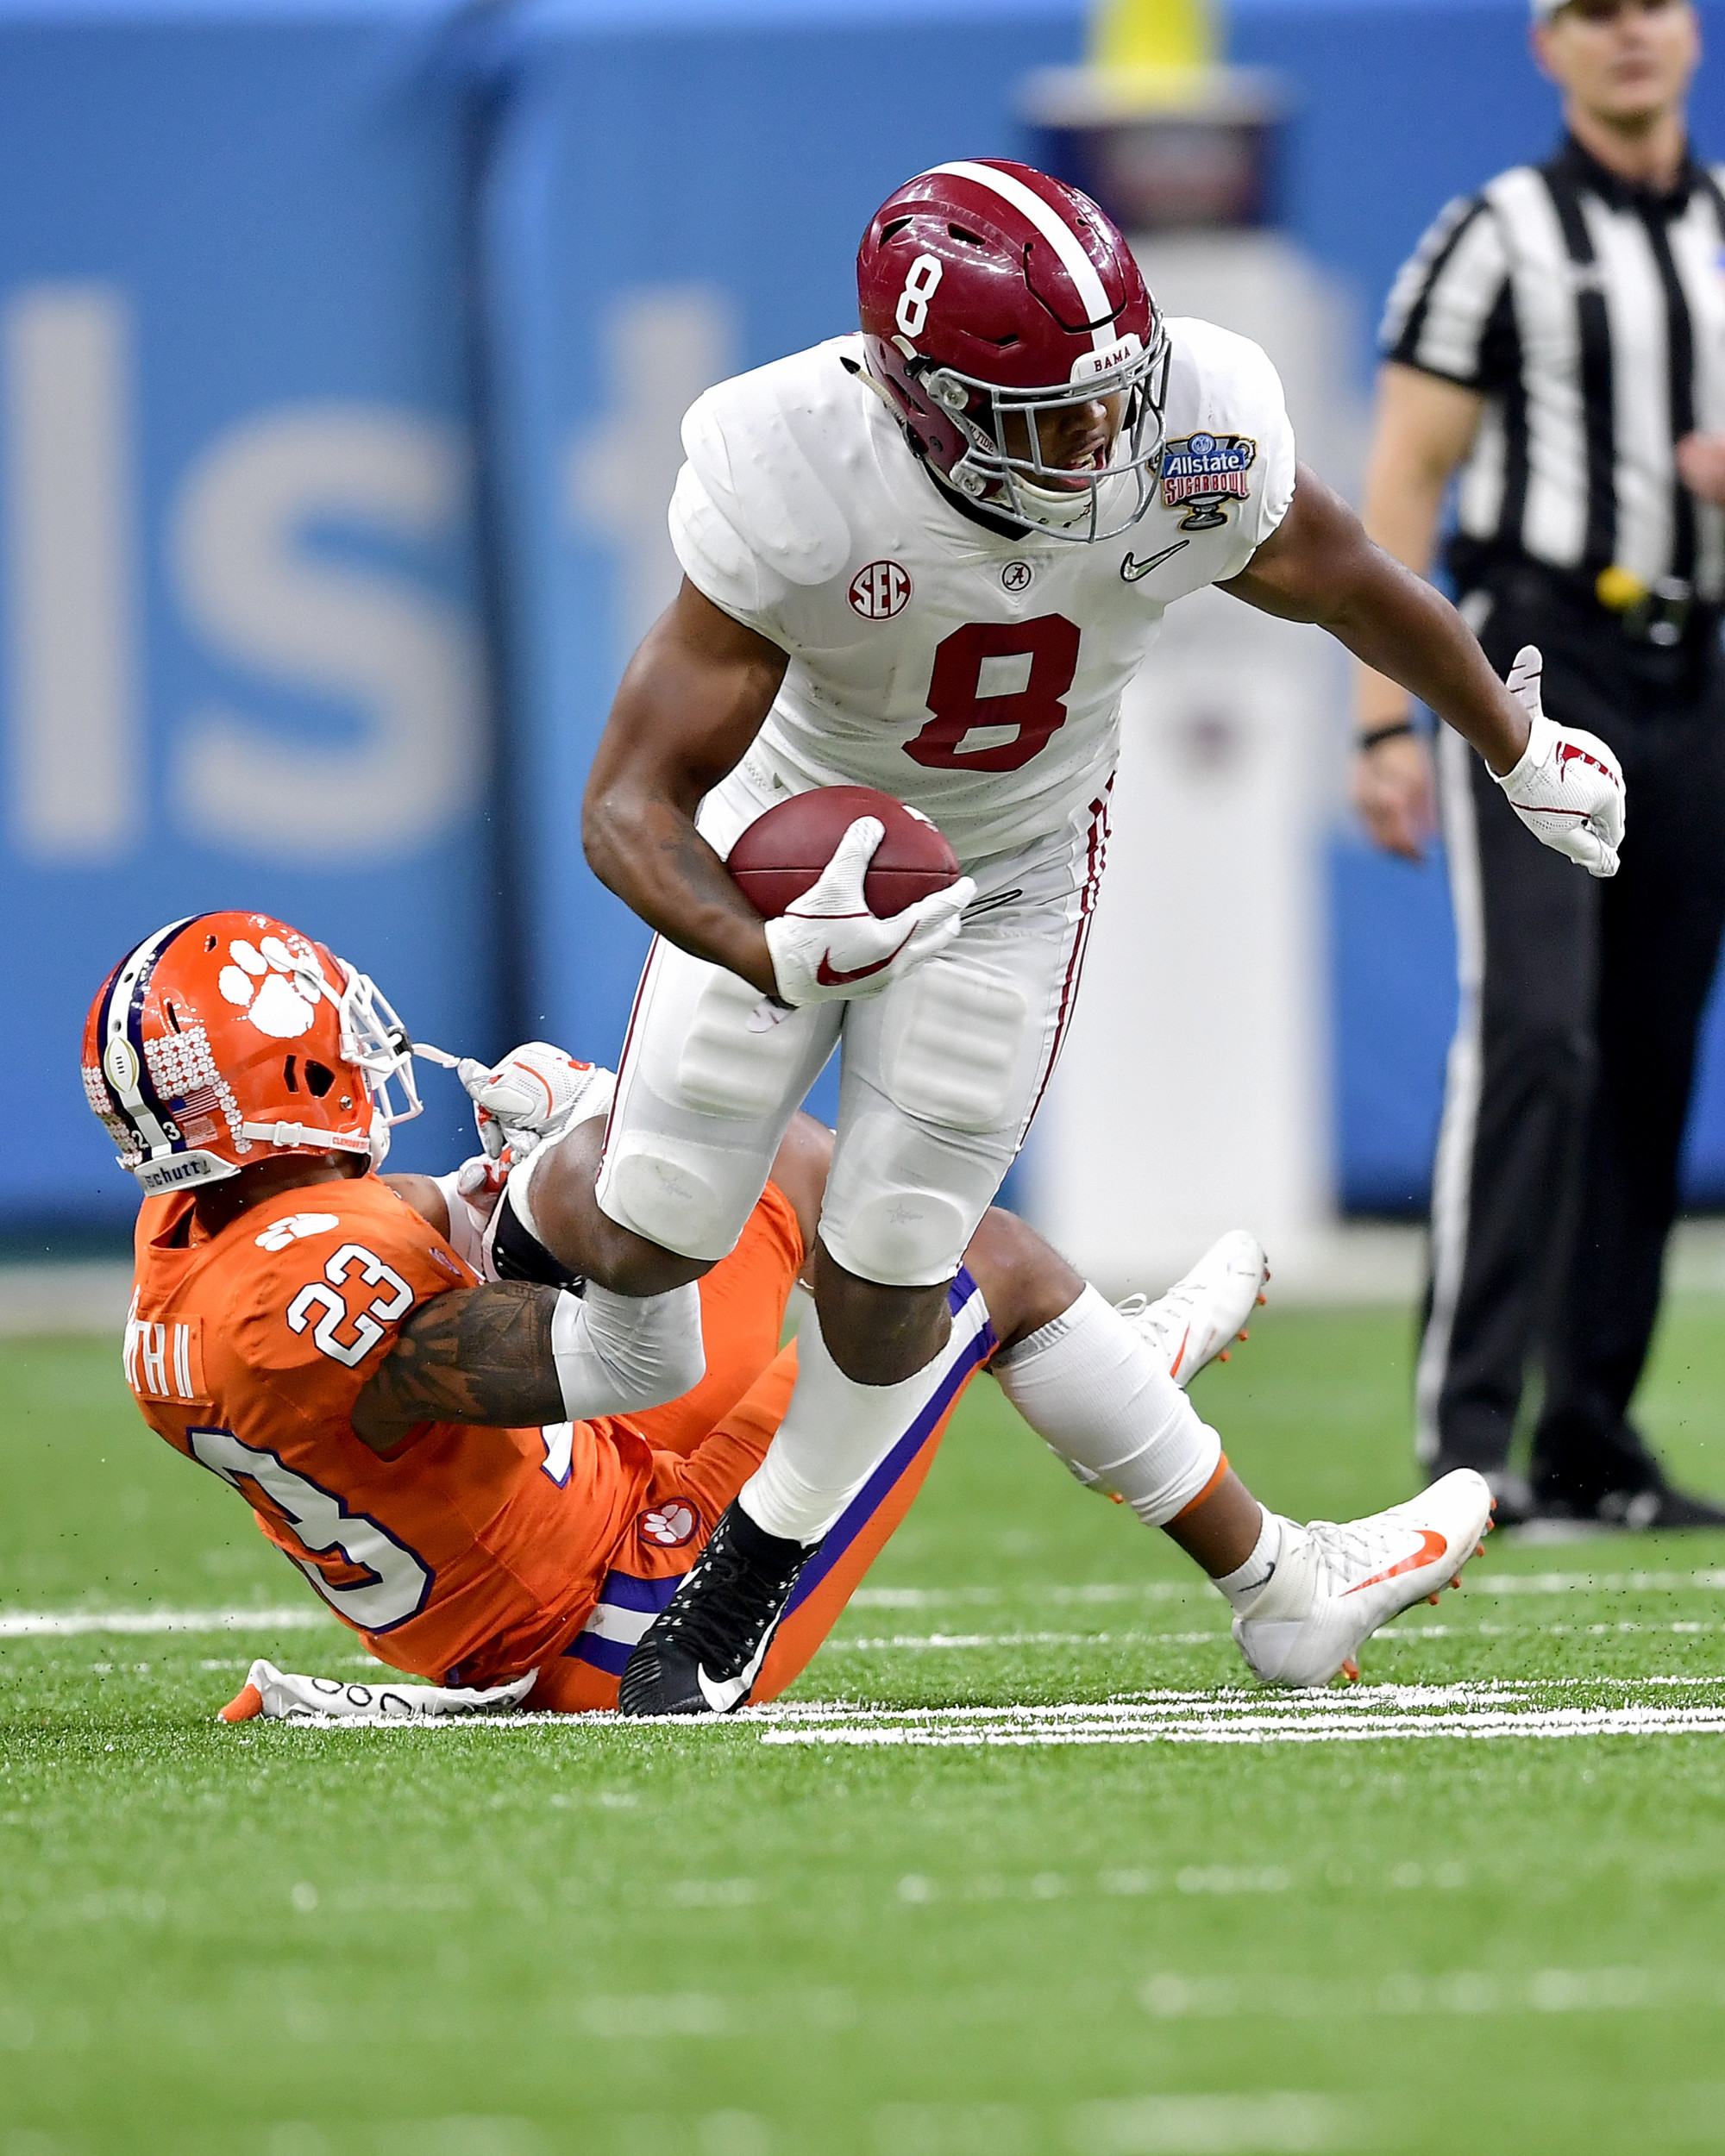 Alabama Crimson Tide running back Josh Jacobs (8) tries to get loose from Clemson Tigers safety Van Smith (23) in the first half of the 2018 AllState Sugar Bowl on Jan. 1, 2018, at the Mercedes-Benz SuperDome in New Orleans, La. Alabama won the game 24-6. (Photo by Lee Walls)